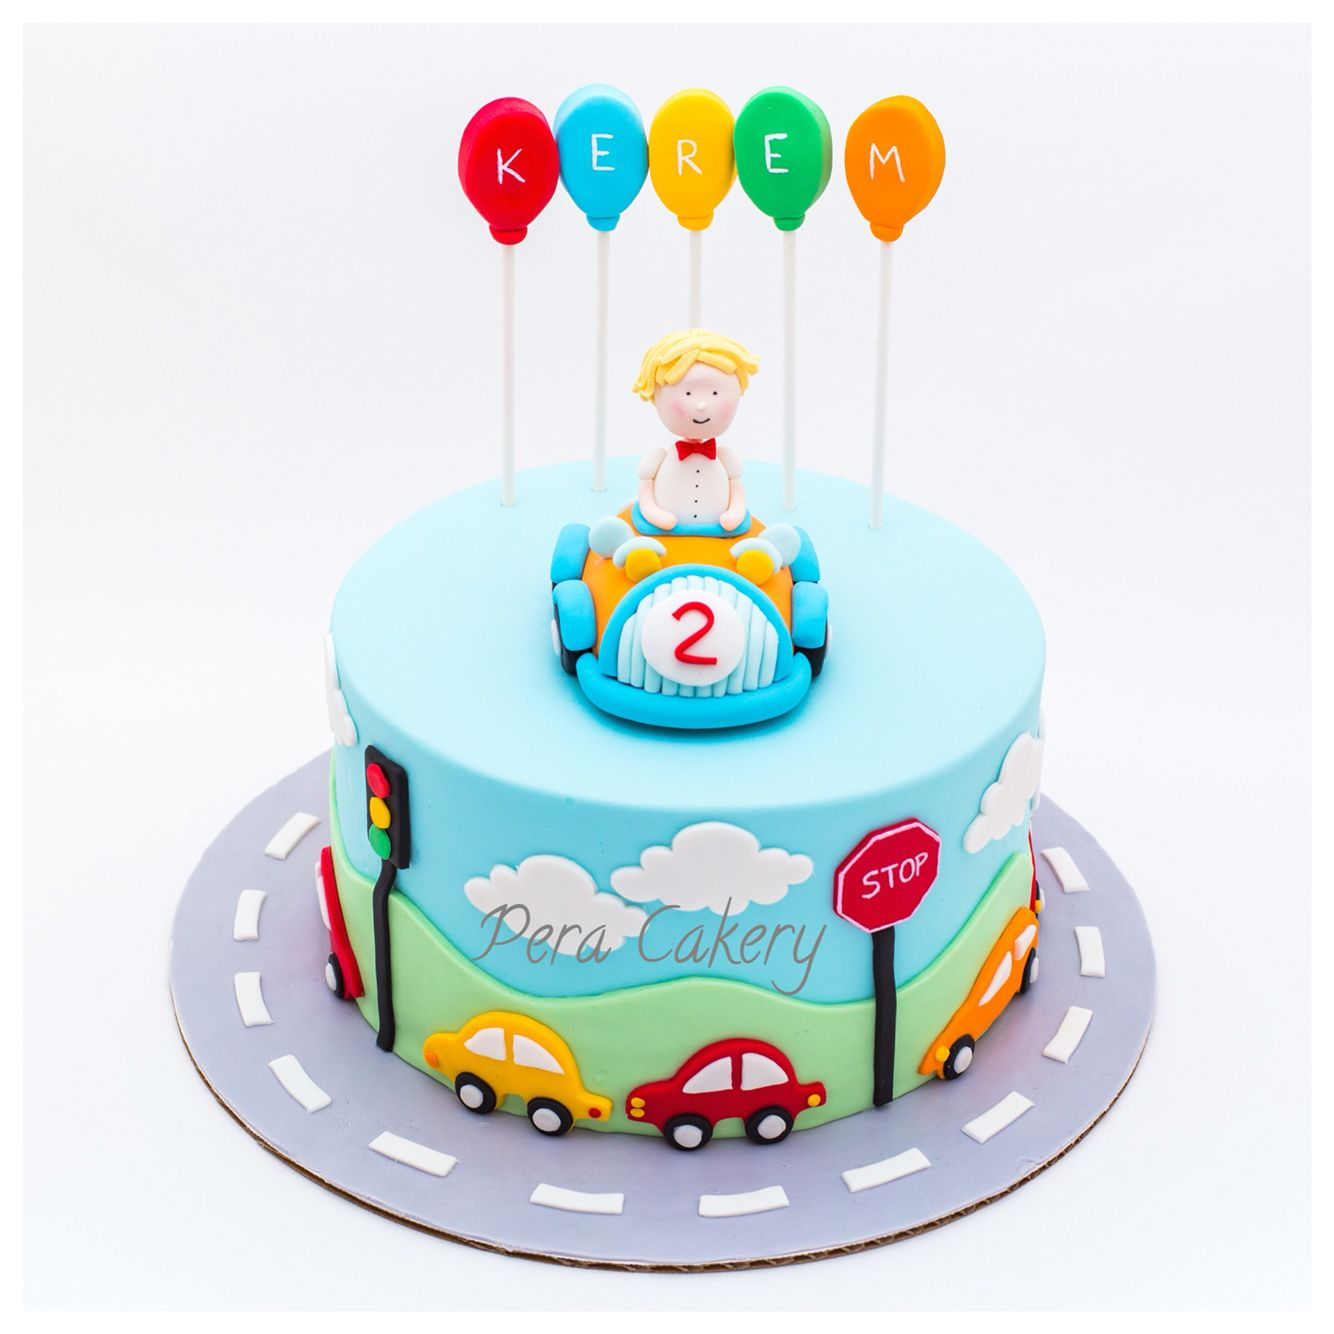 Car Cake For A 2 Year Old Boy Pera Cakery Cakes Birthday Cake